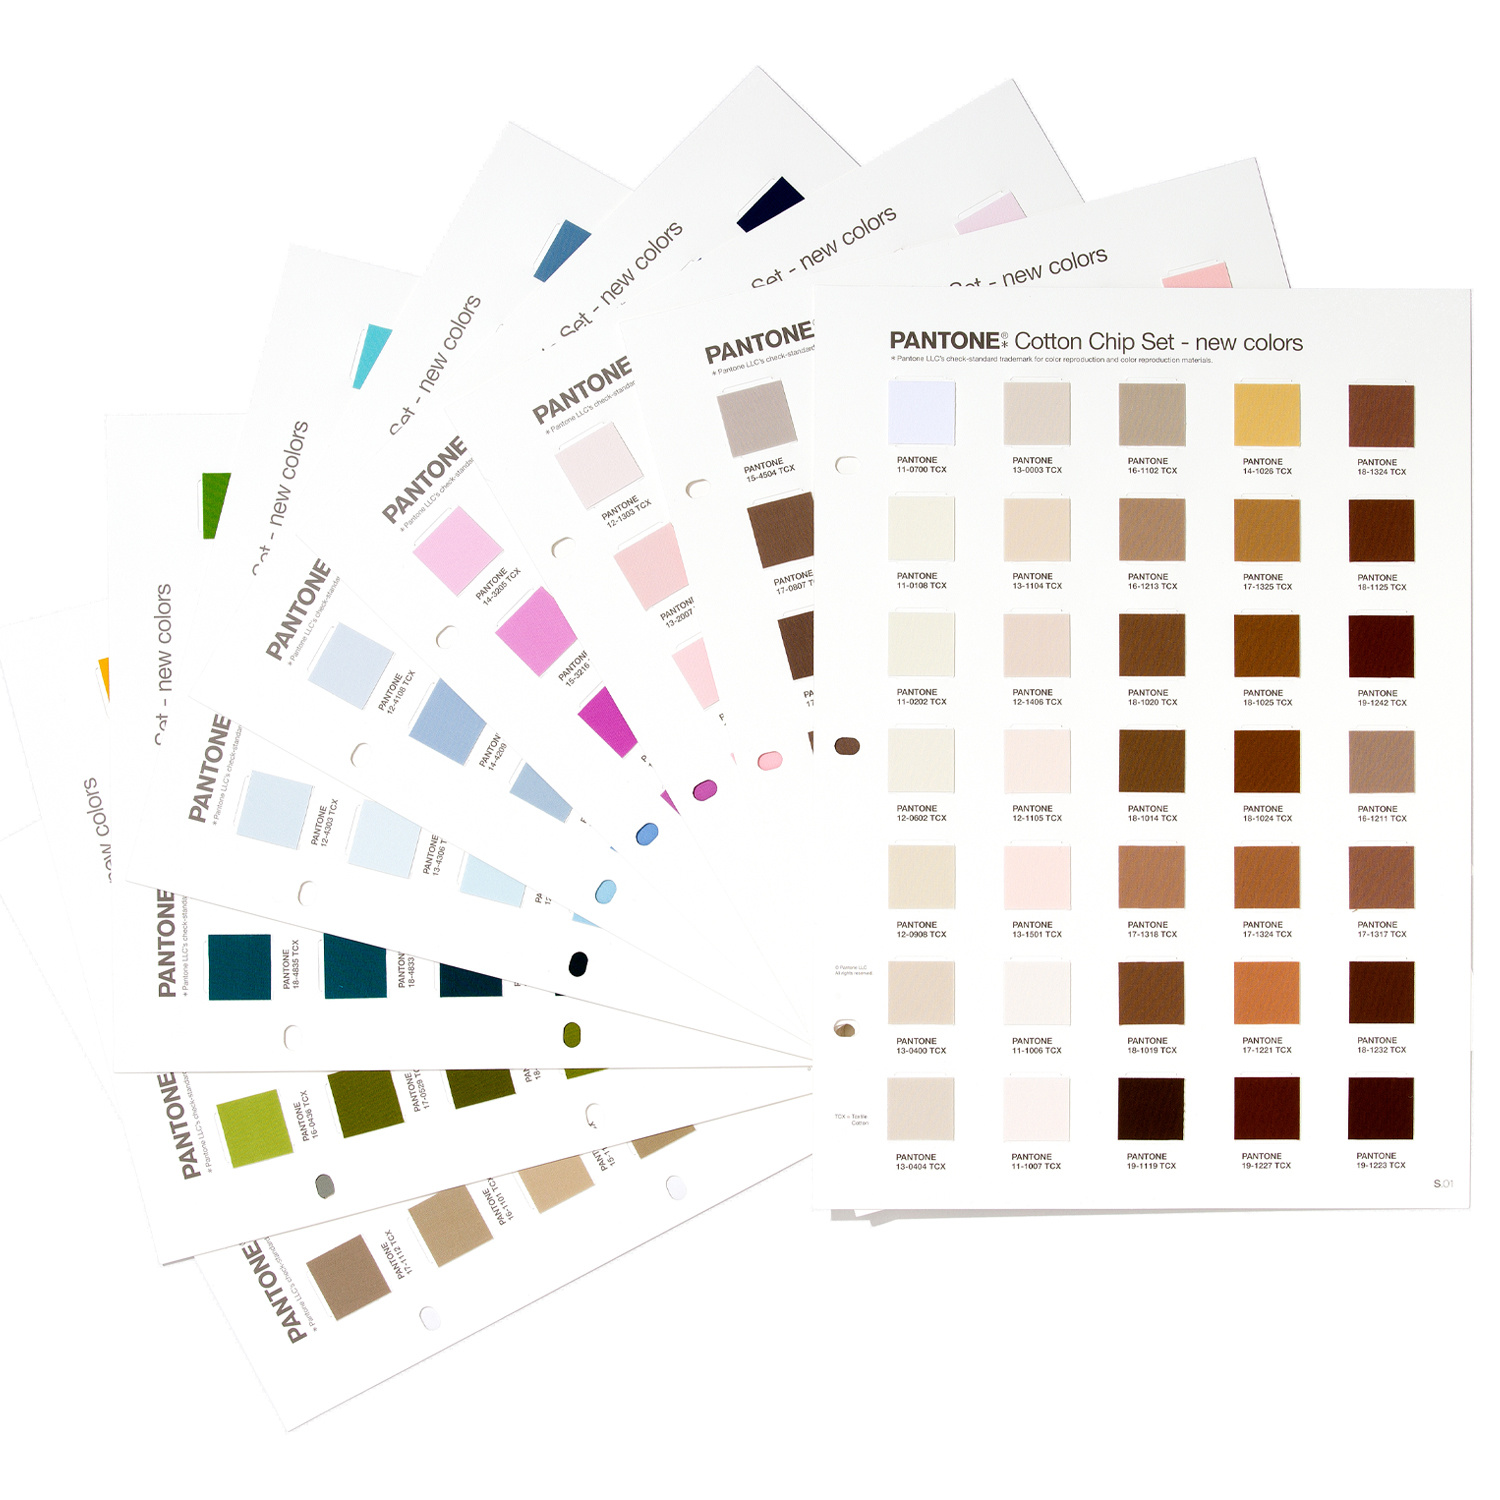 PANTONE PANTONE FHI Cotton Chip Set Supplement